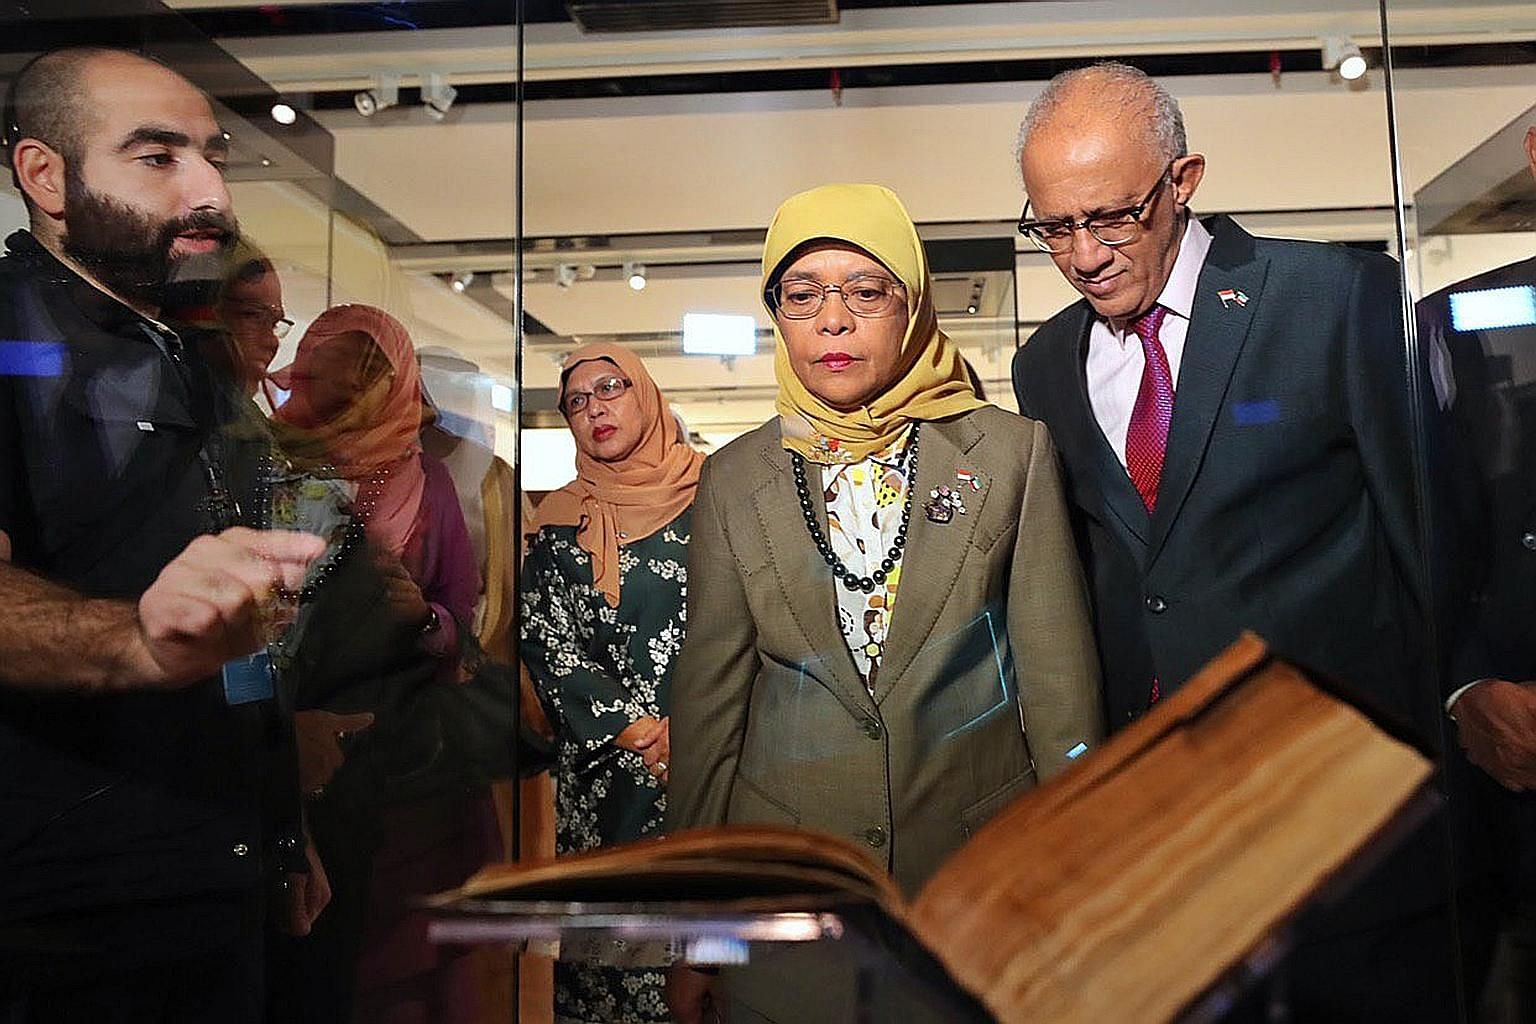 President Halimah Yacob and her husband Mohamed Abdullah Alhabshee looking at exhibits in the Sheikh Abdullah Al Salem Cultural Centre.